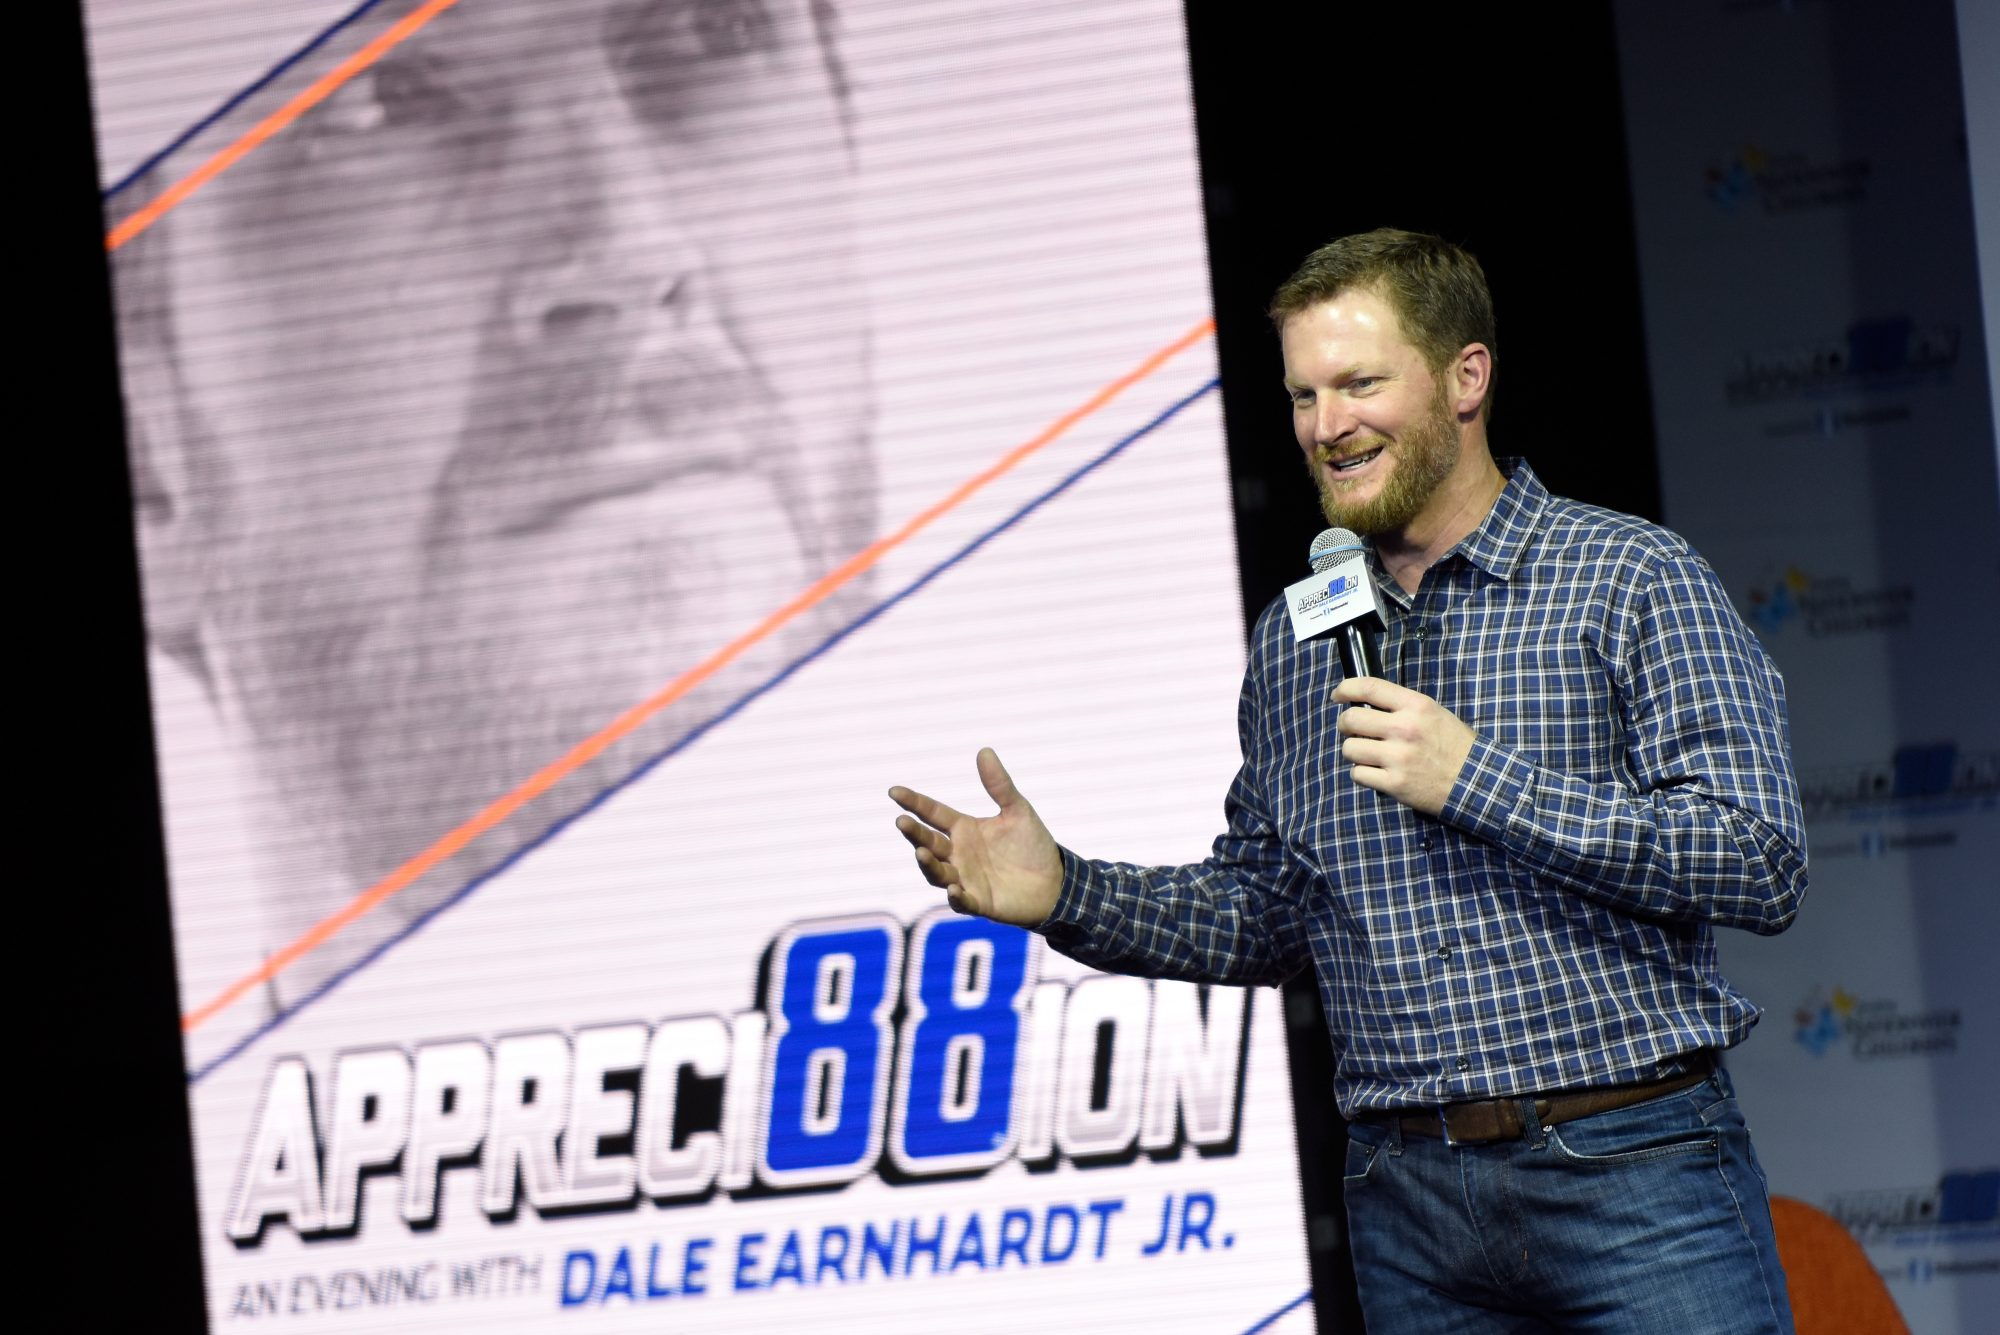 Dale Earnhardt Jr. Speaking During Appreci88tion